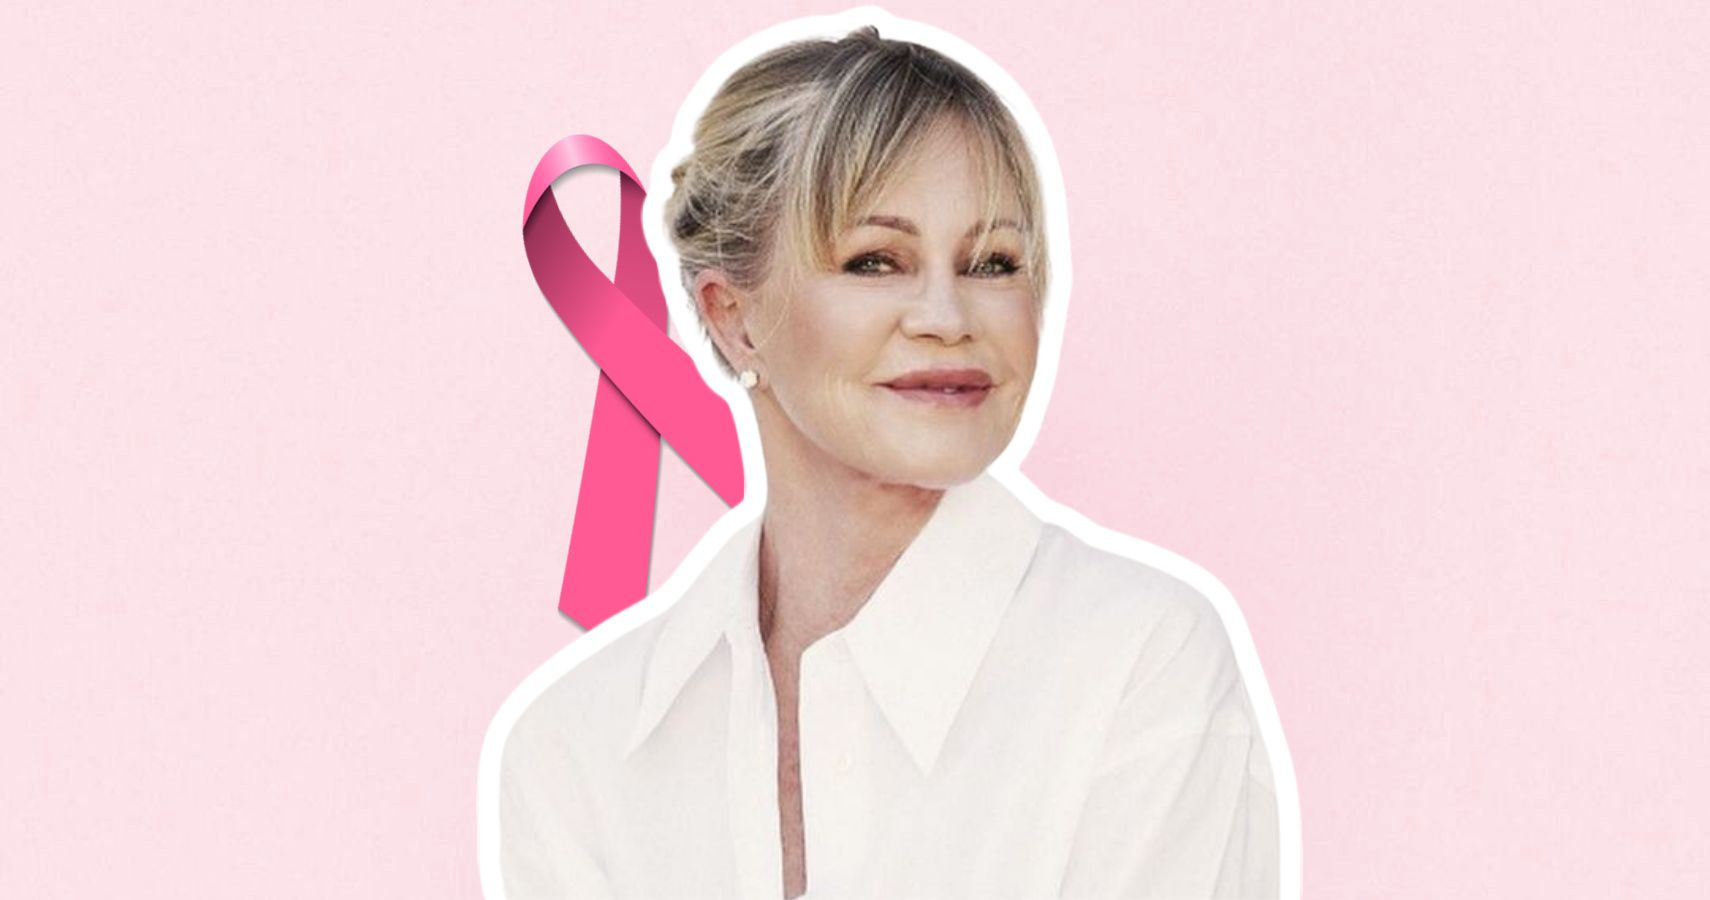 63-Year-Old Actress Melanie Griffith Posts Fit Pics For Breast Cancer Awareness